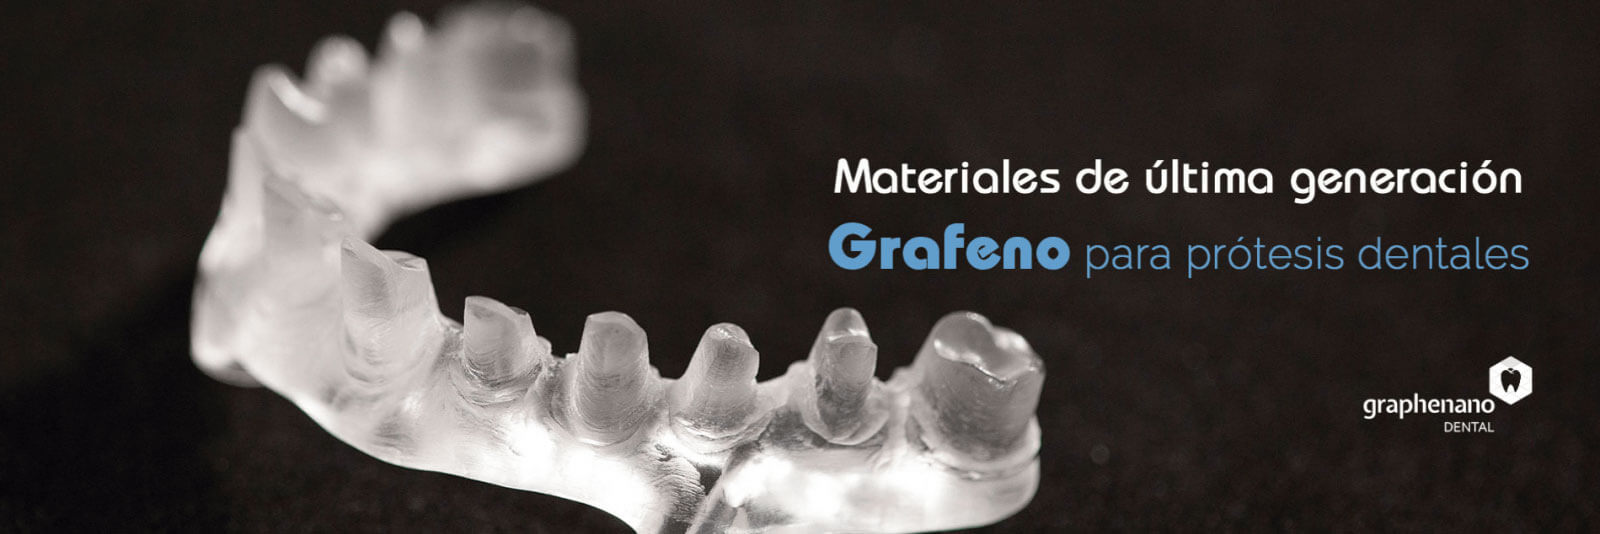 Grafeno para prótesis dentales - Laboratorio dental Córdoba